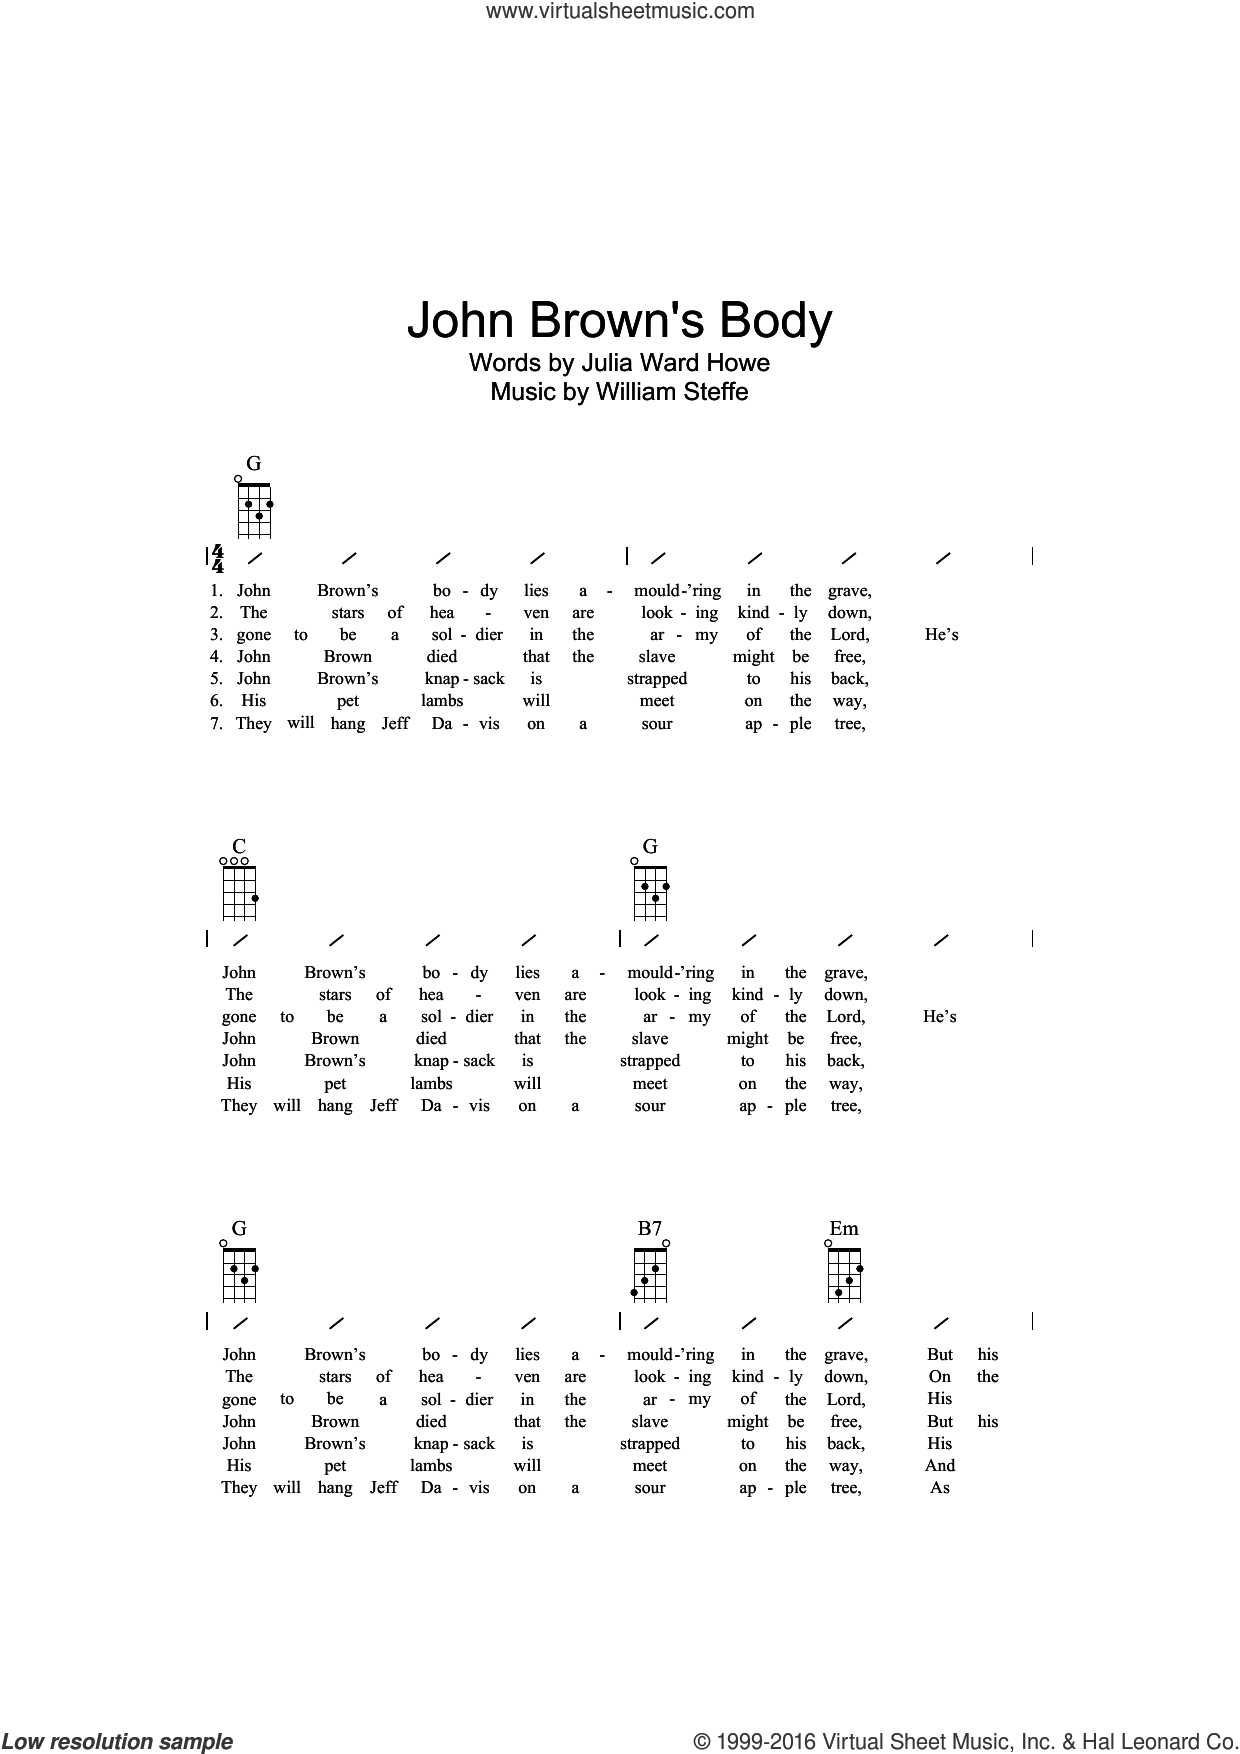 John Brown's Body sheet music for ukulele (chords) by William Steffe, Miscellaneous and Julia Ward Howe. Score Image Preview.